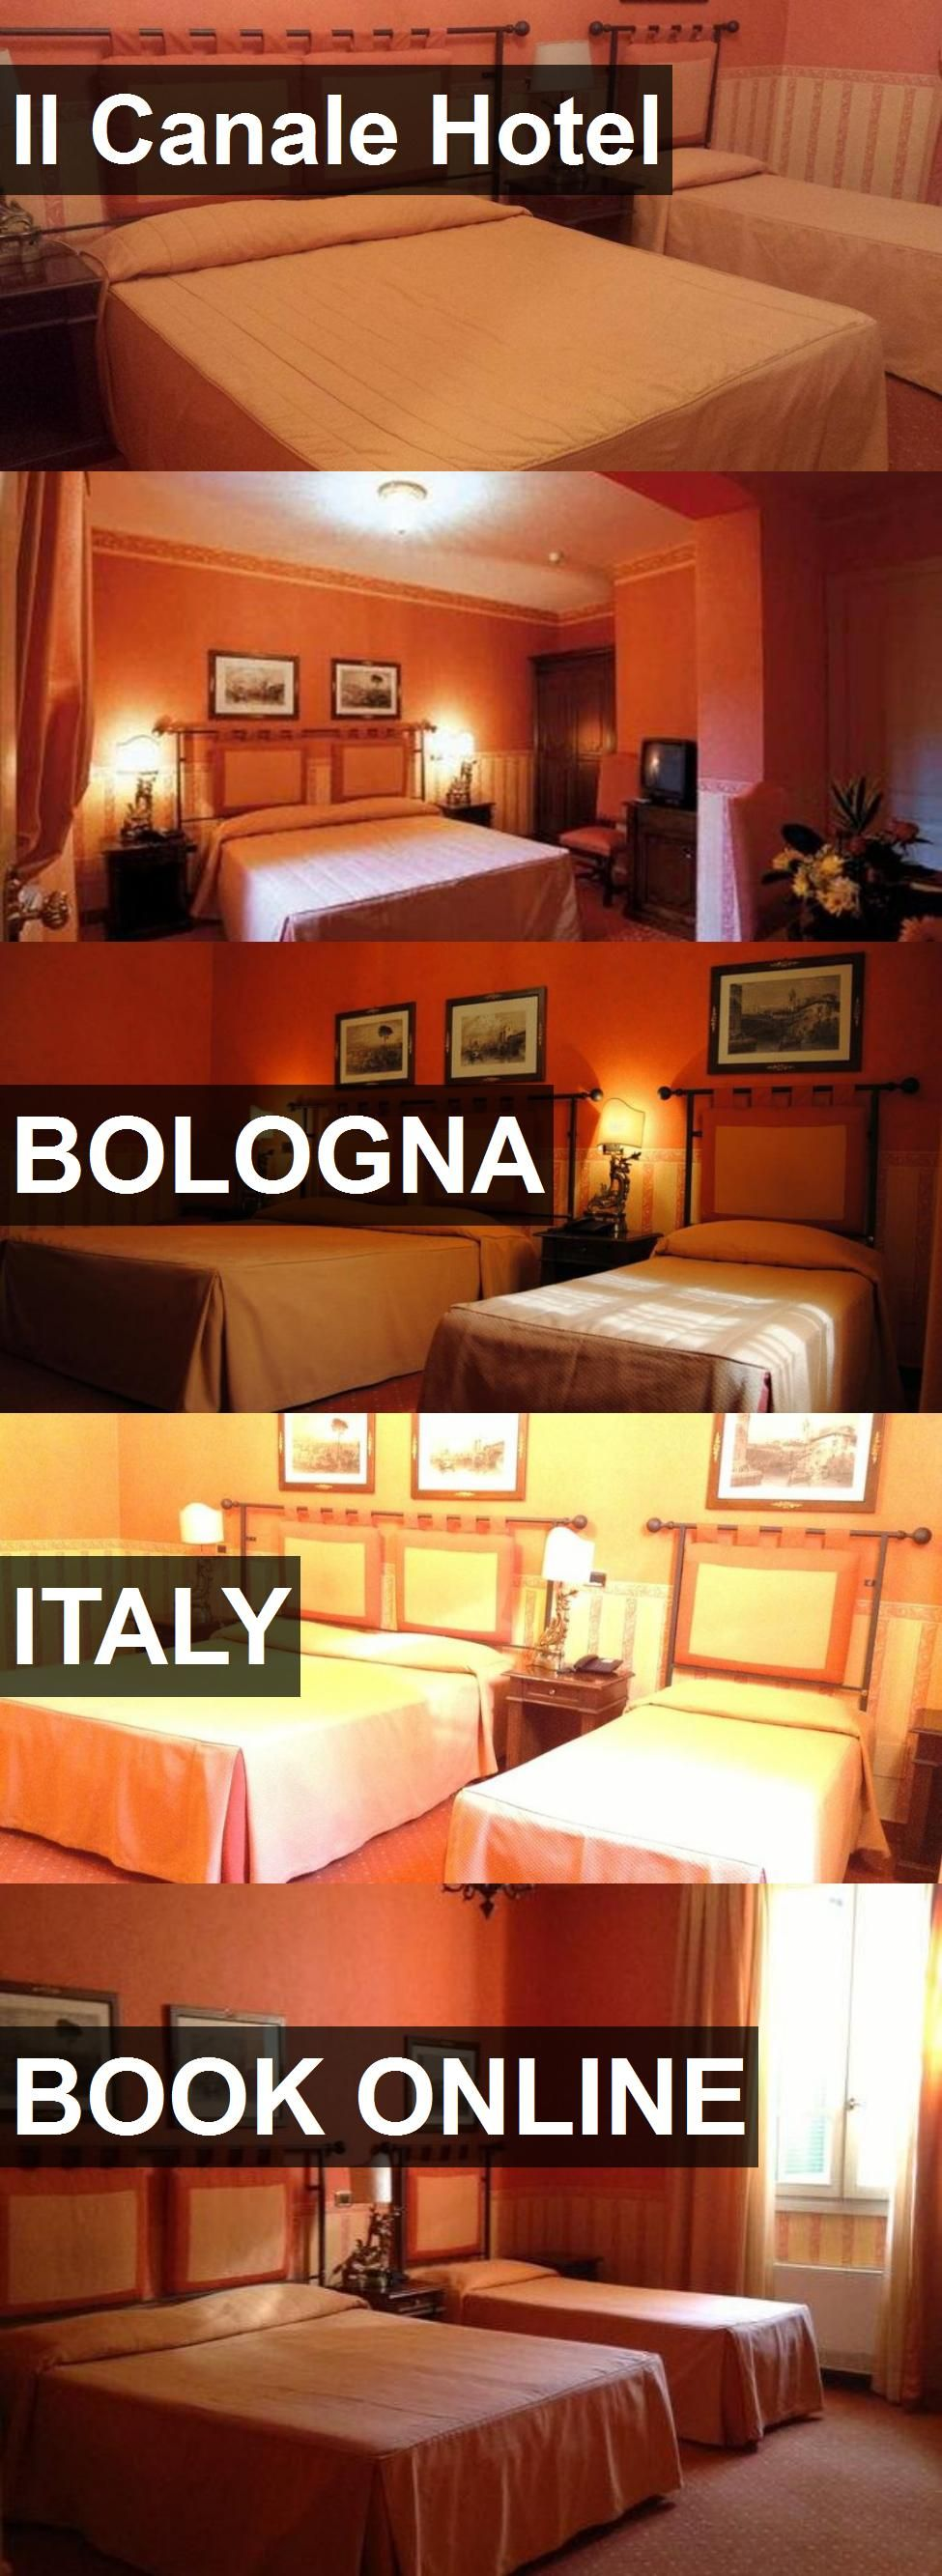 Il Canale Hotel In Bologna, Italy. For More Information